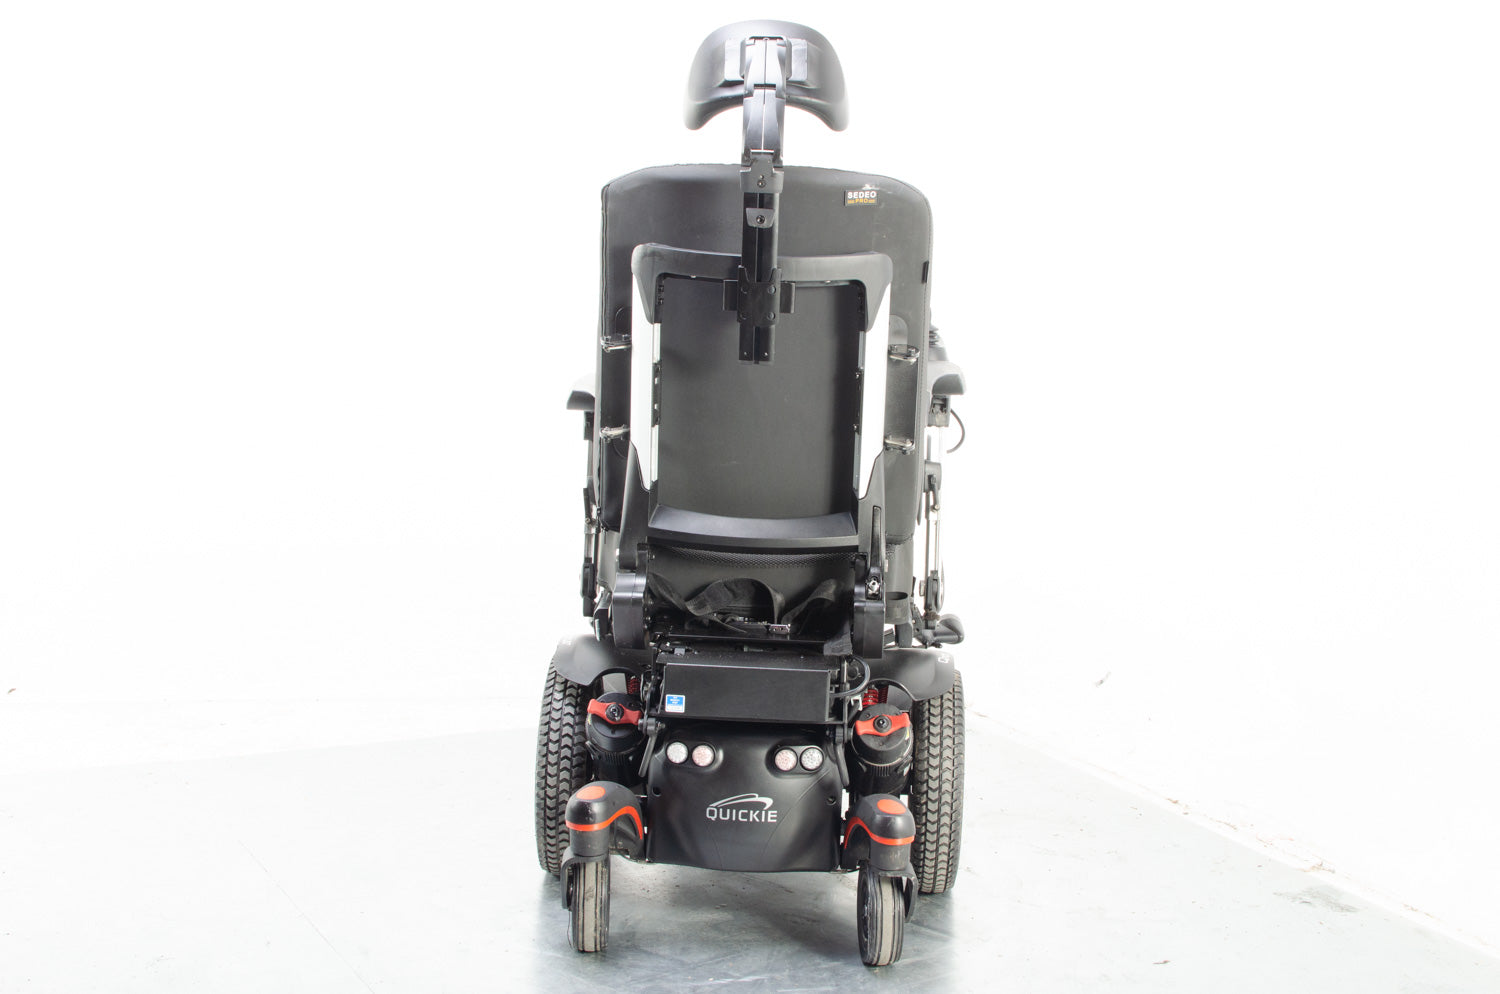 Quickie Q700 M SEDEO PRO 6mph Powered Wheelchair Electric Raiser Tilt Sunrise Medical Powerchair in Black